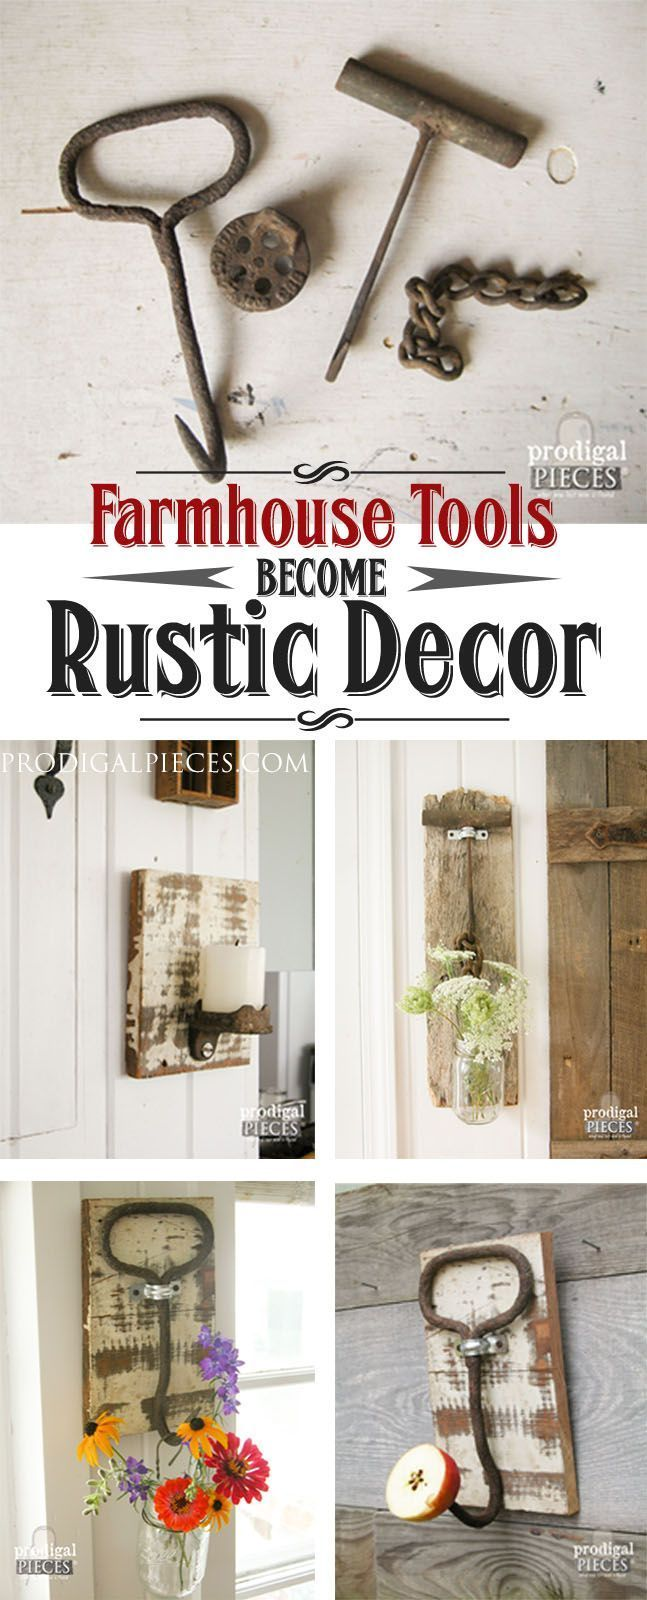 Farmhouse Tools Become Rustic Decor | Barn wood, Attitude and Hanger